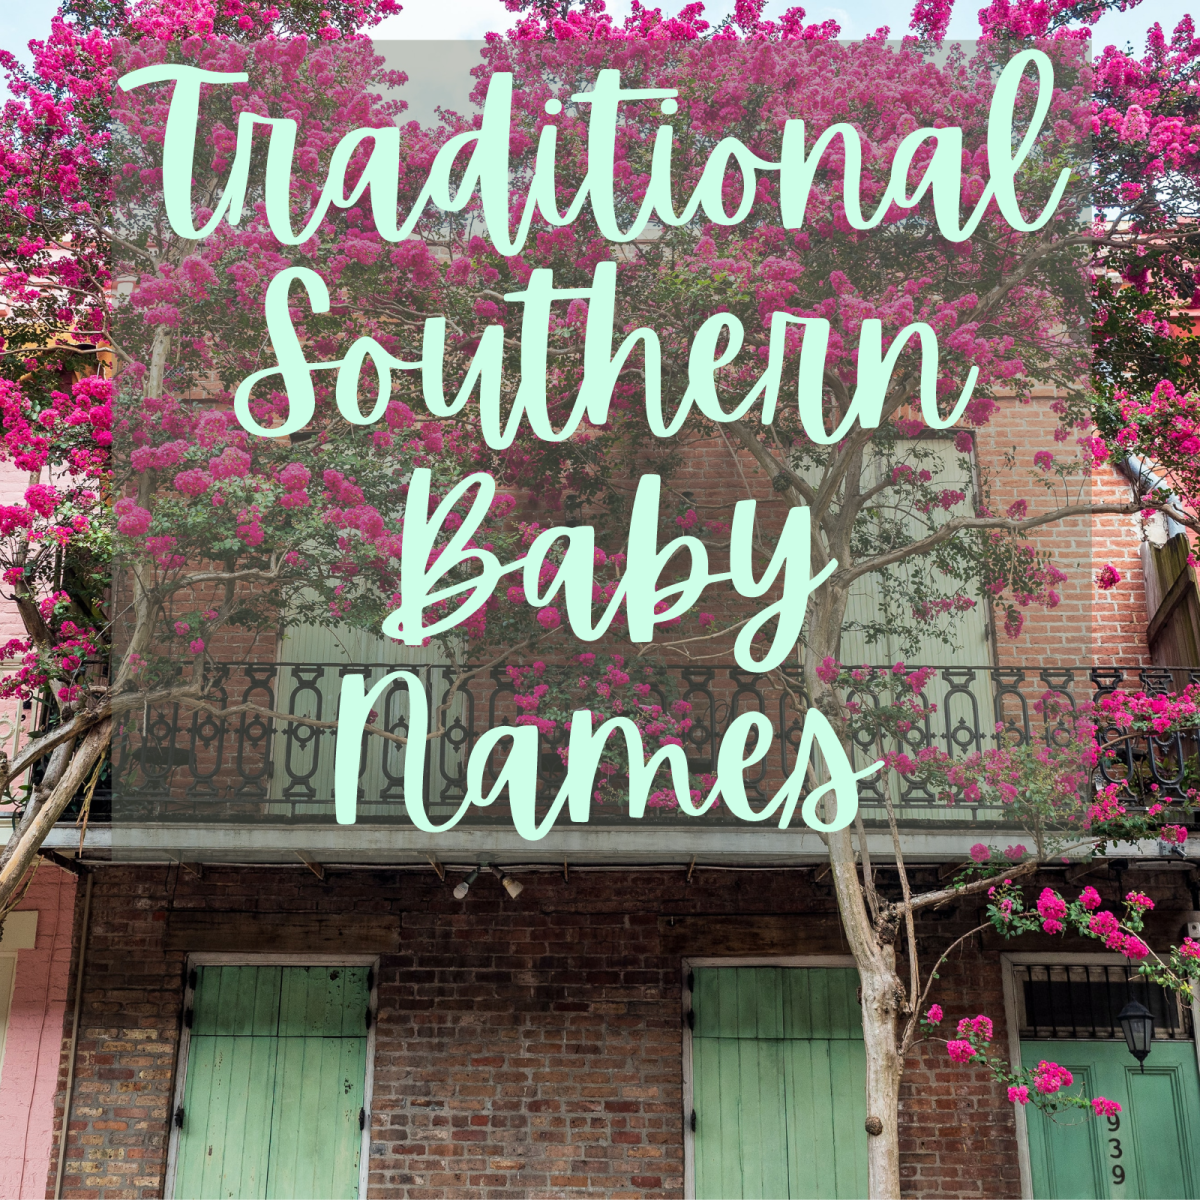 300+ Southern and Country Baby Names for Boys and Girls